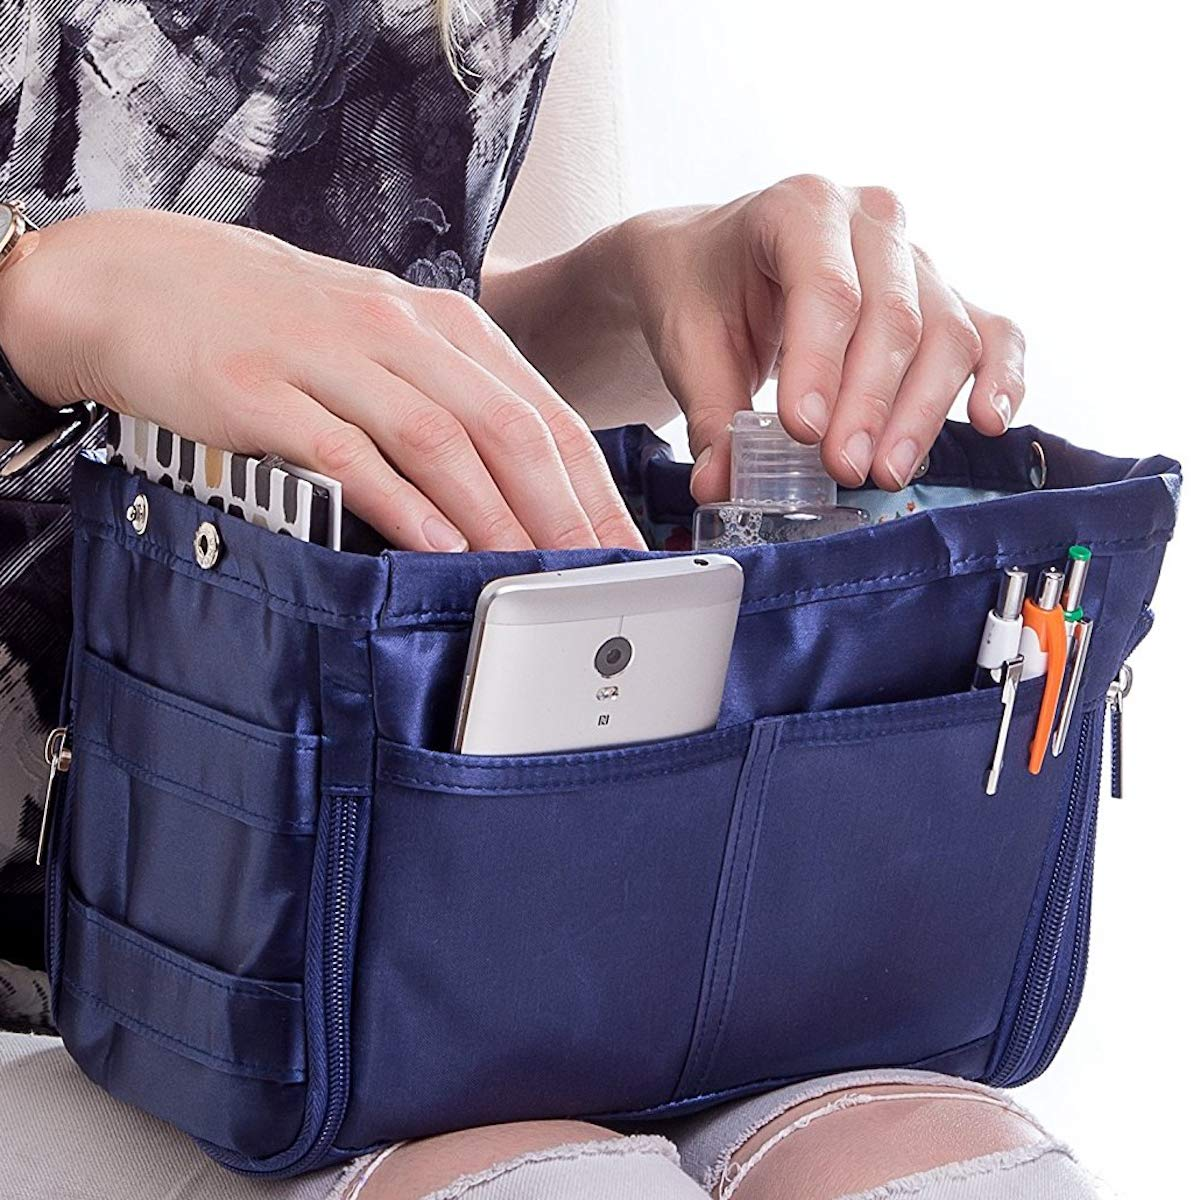 Purse Organizer for Handbag Tote Bag - Premium Insert - Dual Color Reversible and Expandable (Style 5, Navy Blue)